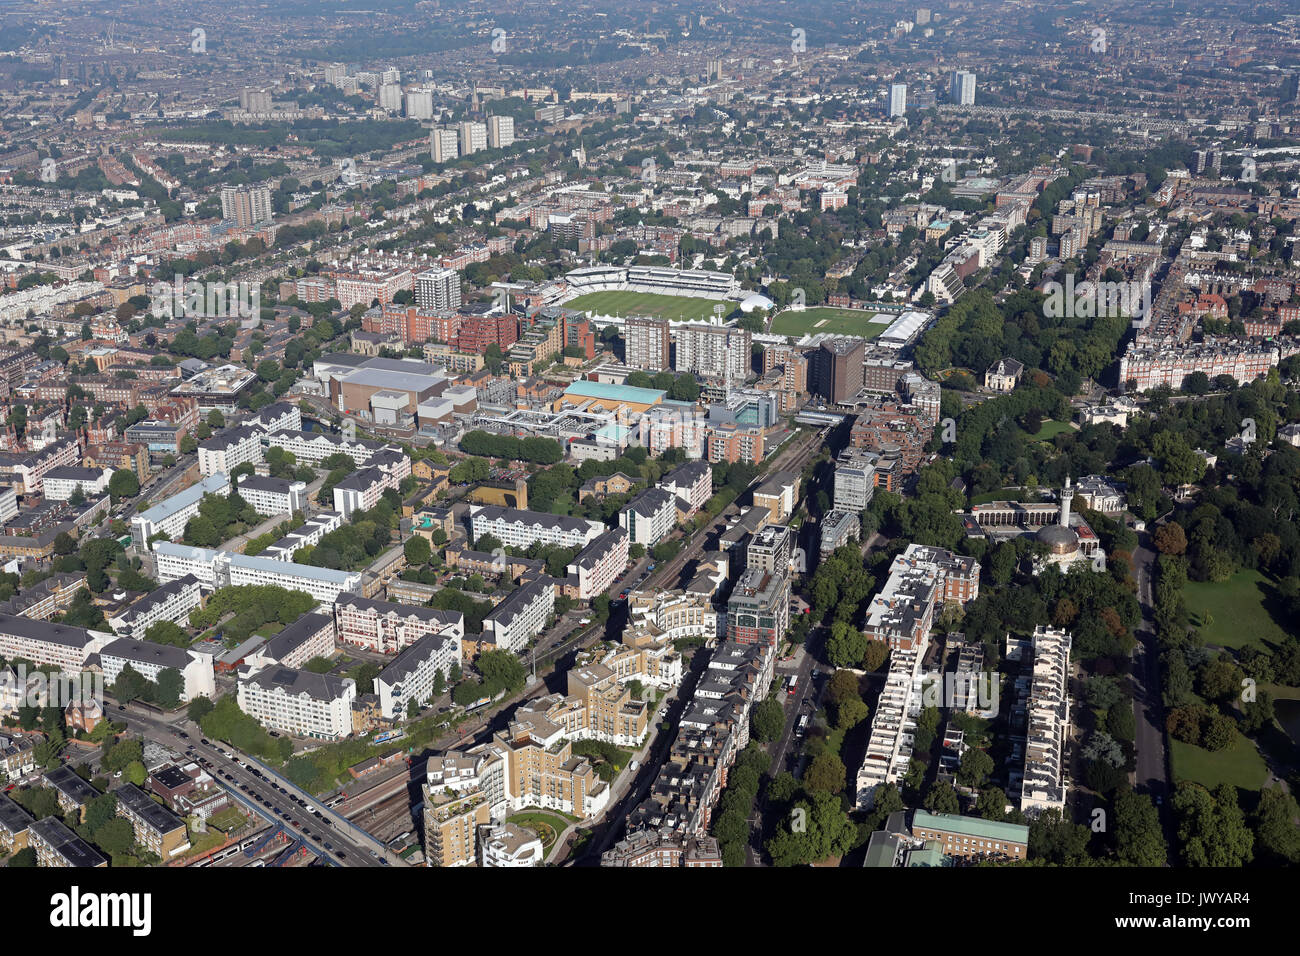 aerial view of Lisson Grove & St Johns Wood area of North London, UK - Stock Image